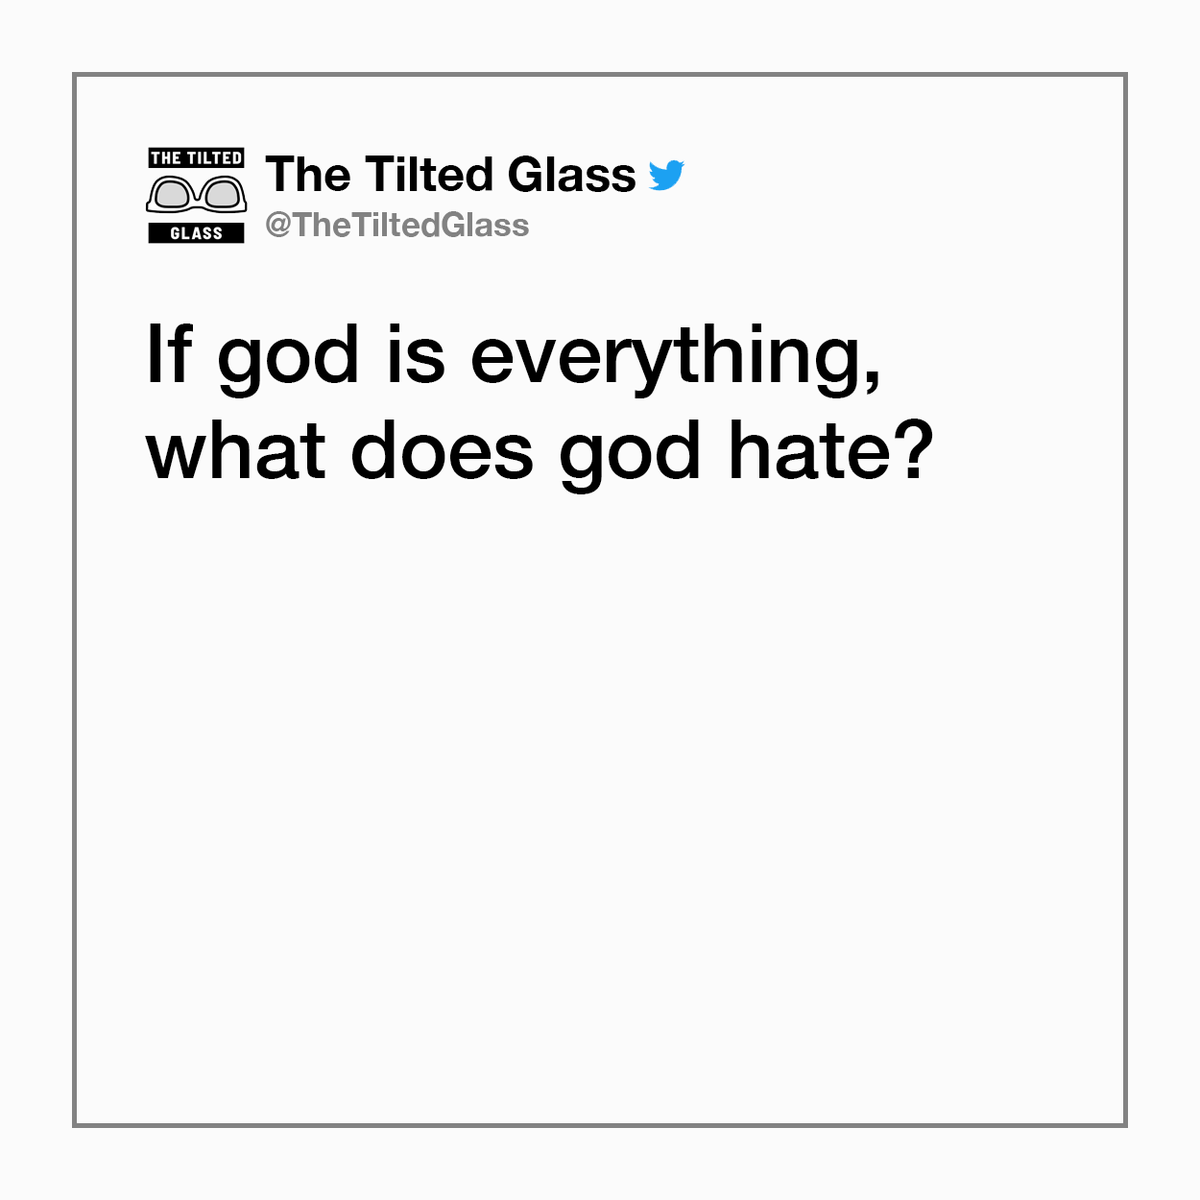 If god is everything, what does god hate?